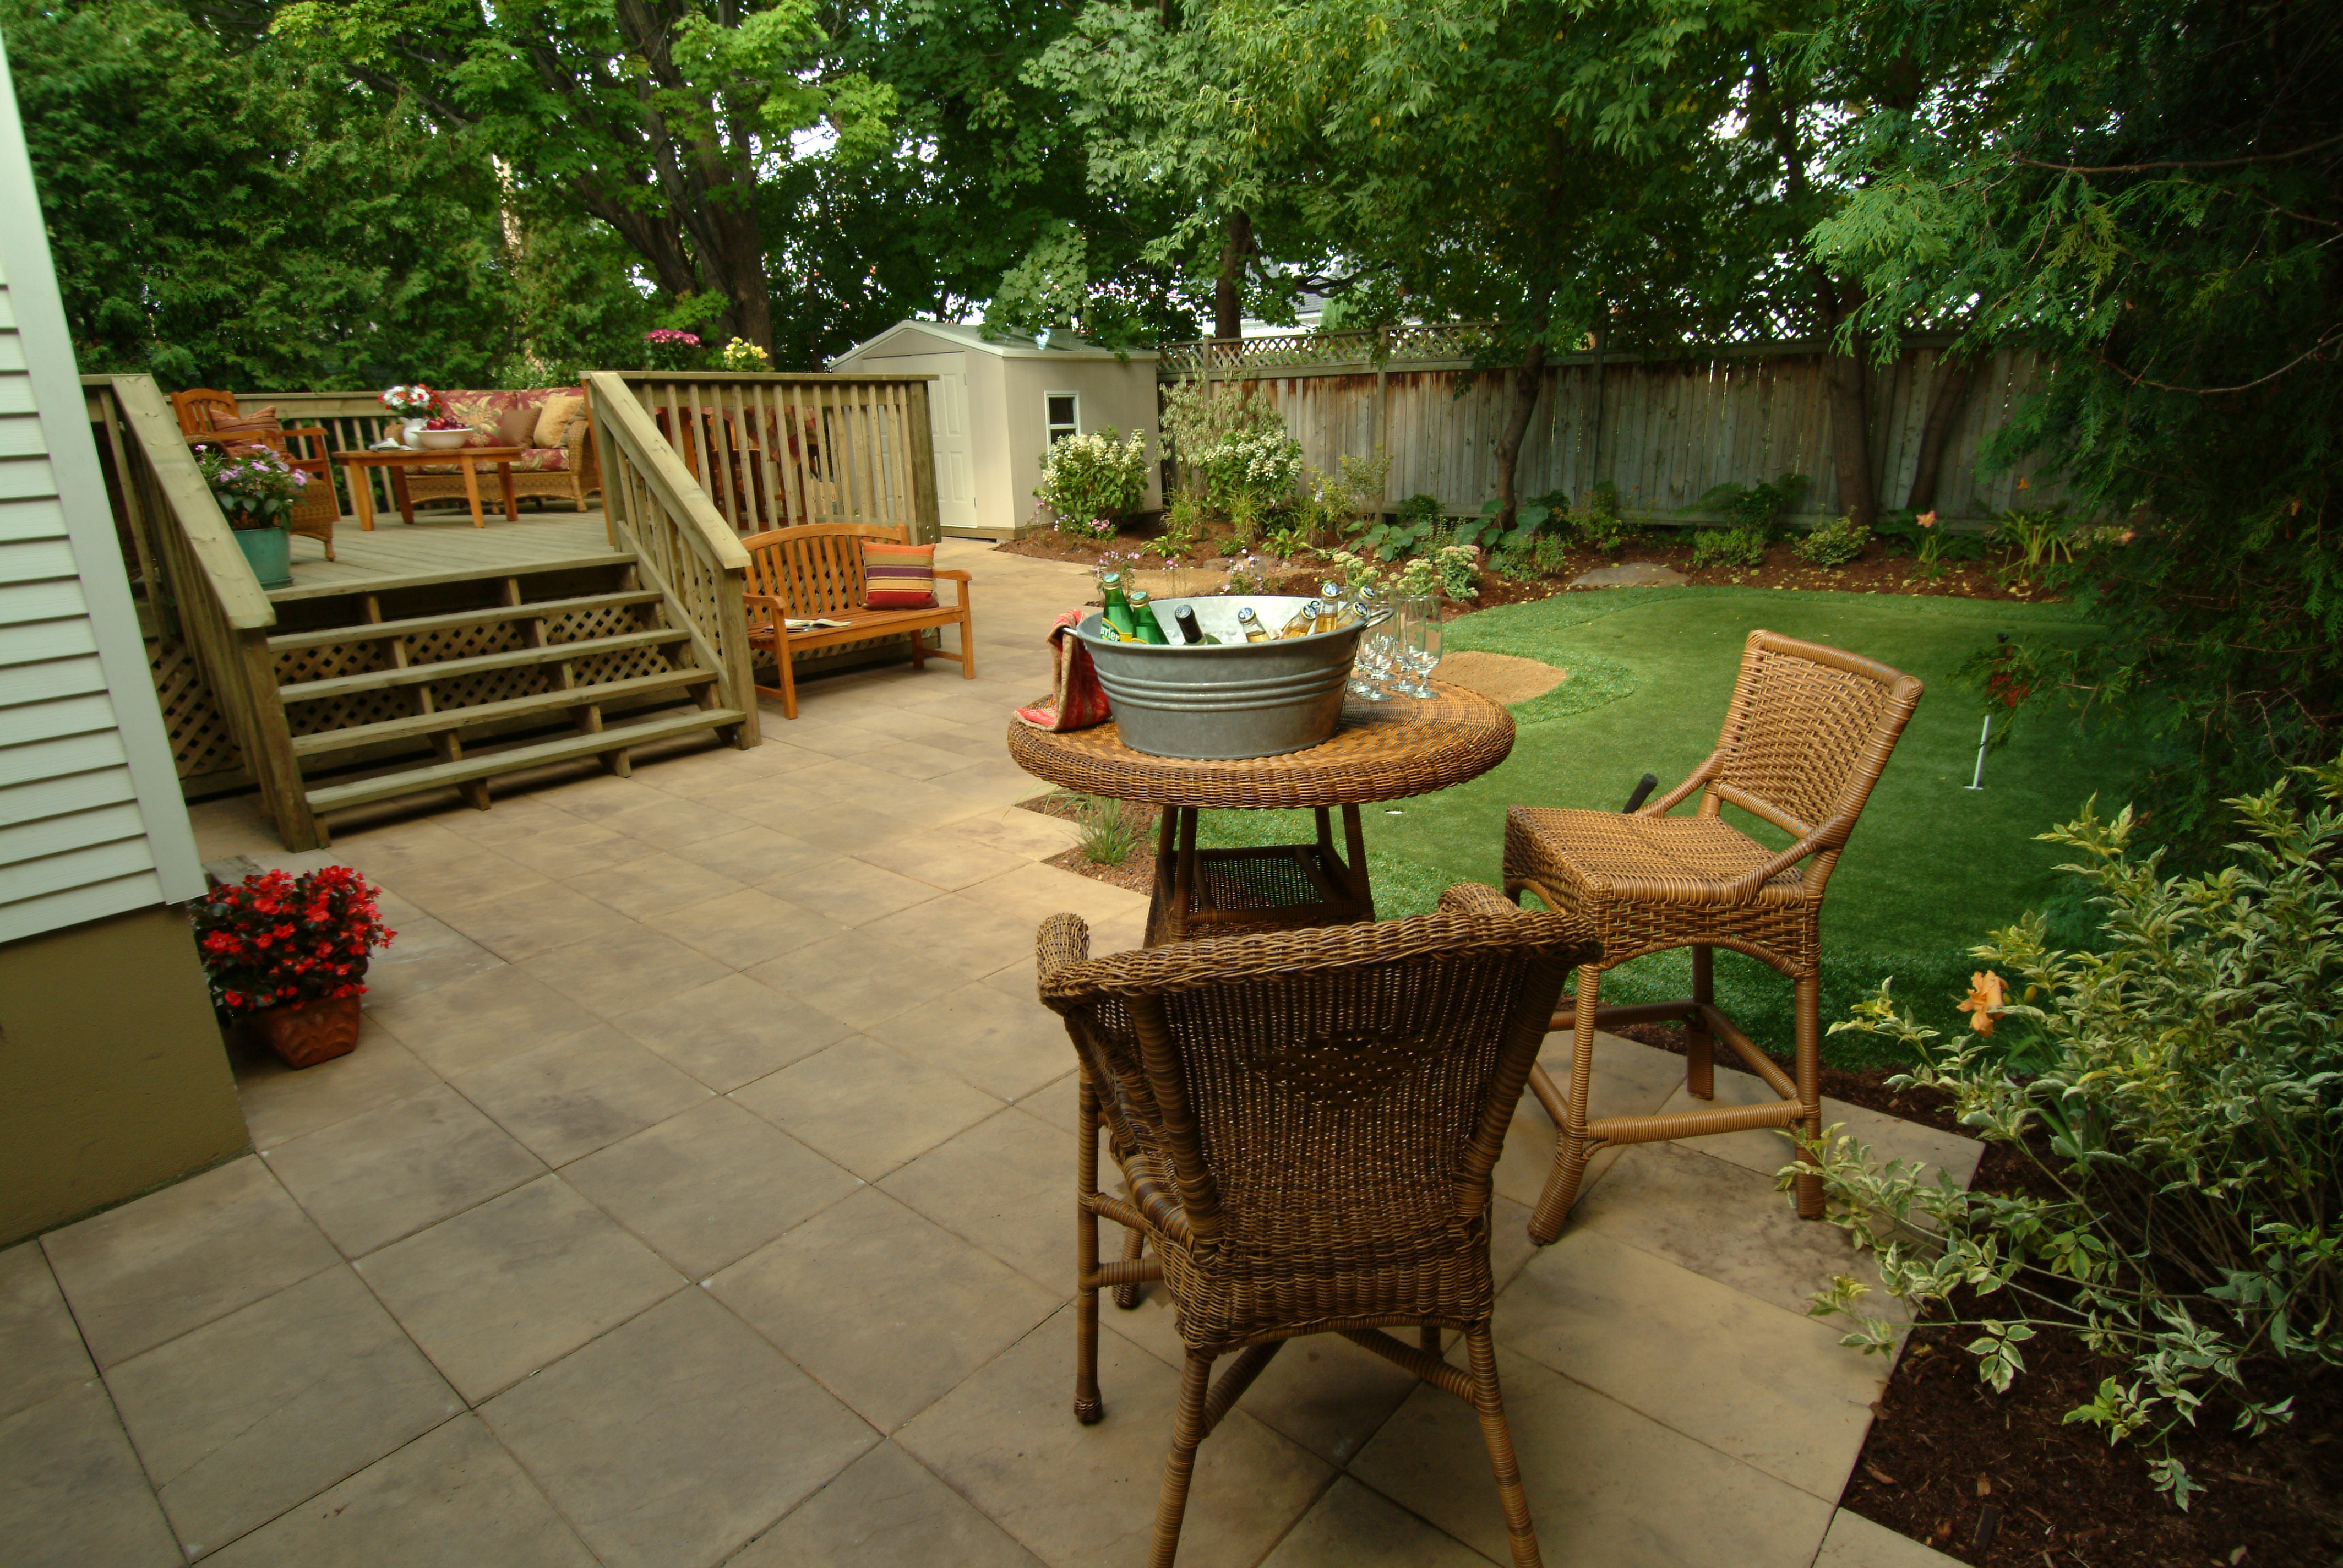 Deck Vs Patio What Is Best For You